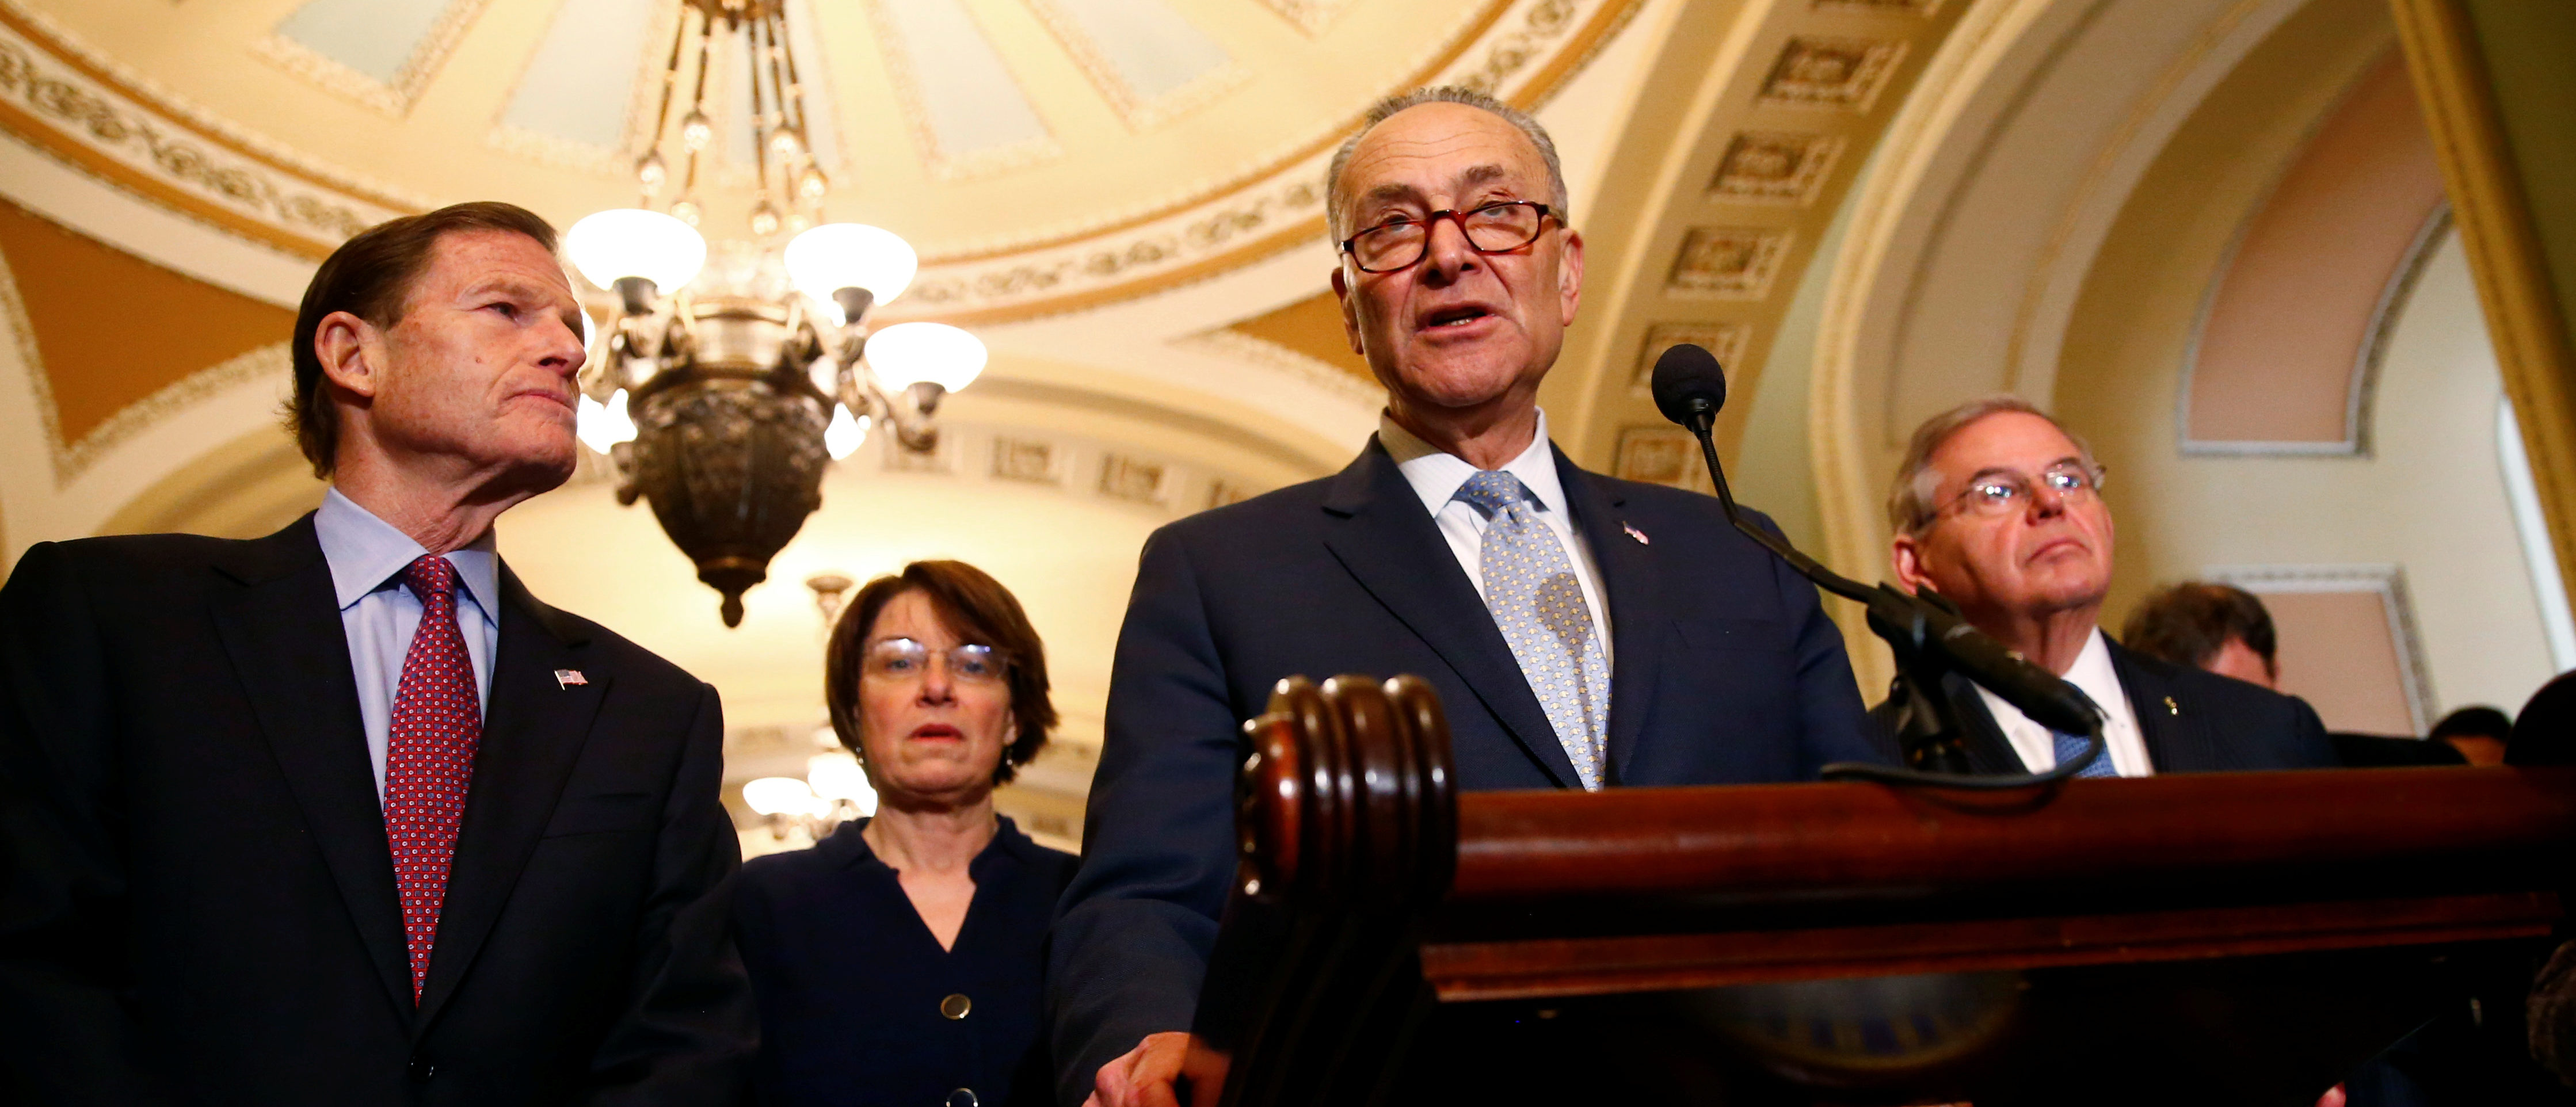 U.S. Senate Minority Leader Chuck Schumer (D-NY) speaks following the weekly policy luncheons at the U.S. Capitol in Washington, U.S. March 13, 2018. REUTERS/Eric Thayer | Dem Bill Calls On Pruitt To Resign